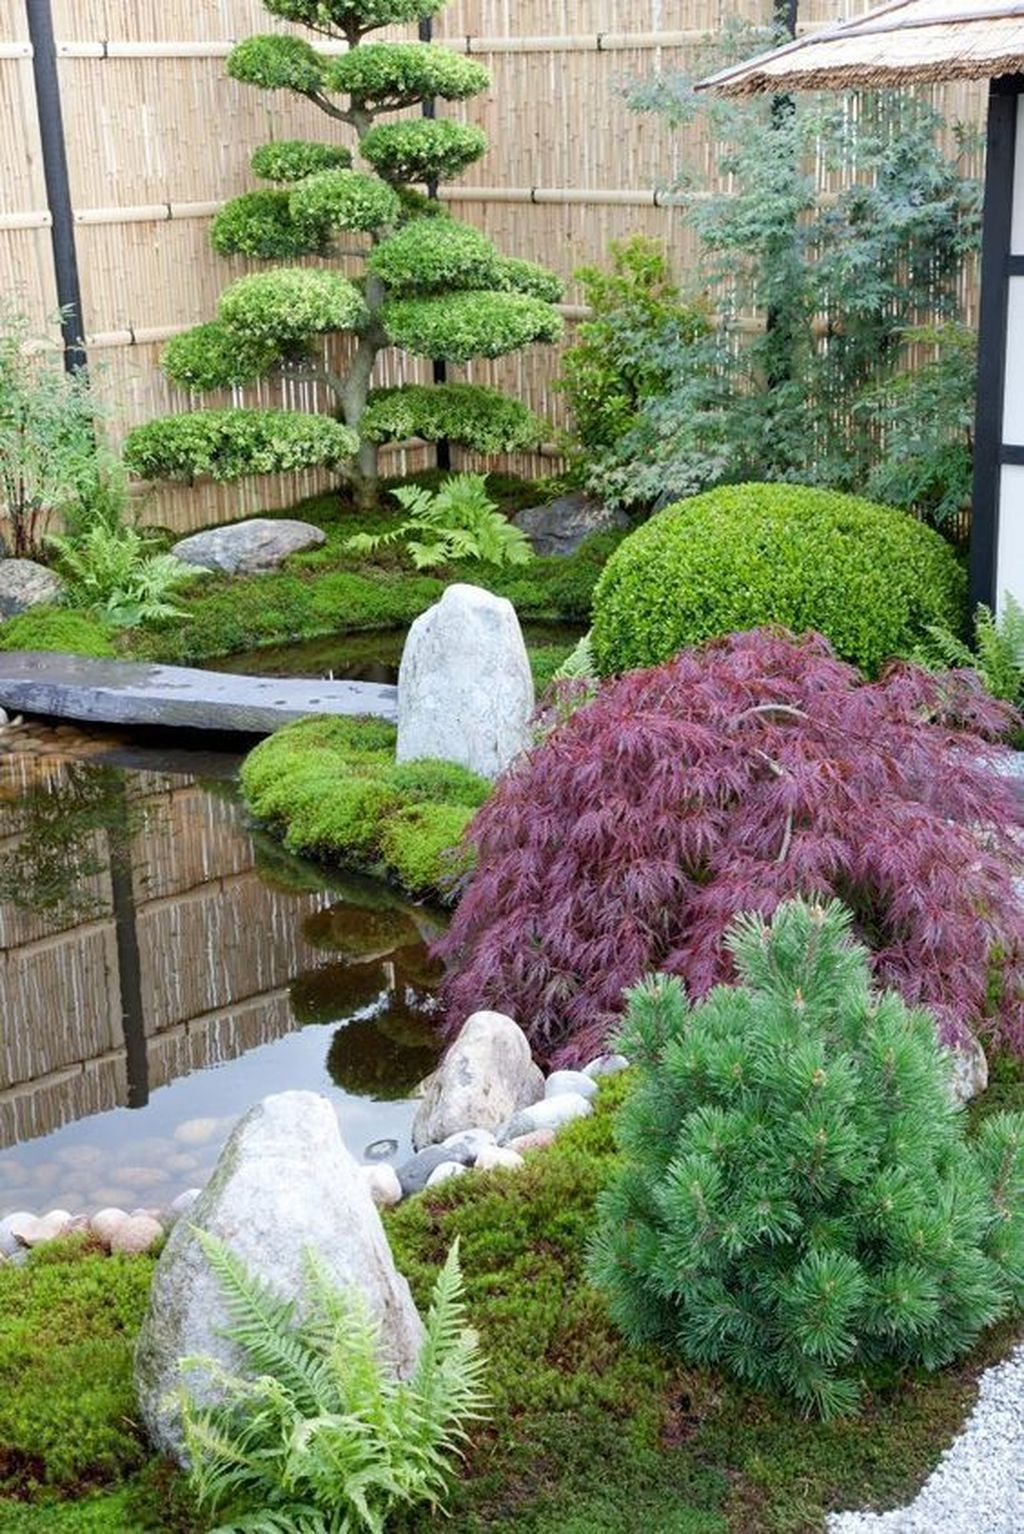 Can You Make a Chinese Garden in Your Backyard? Three